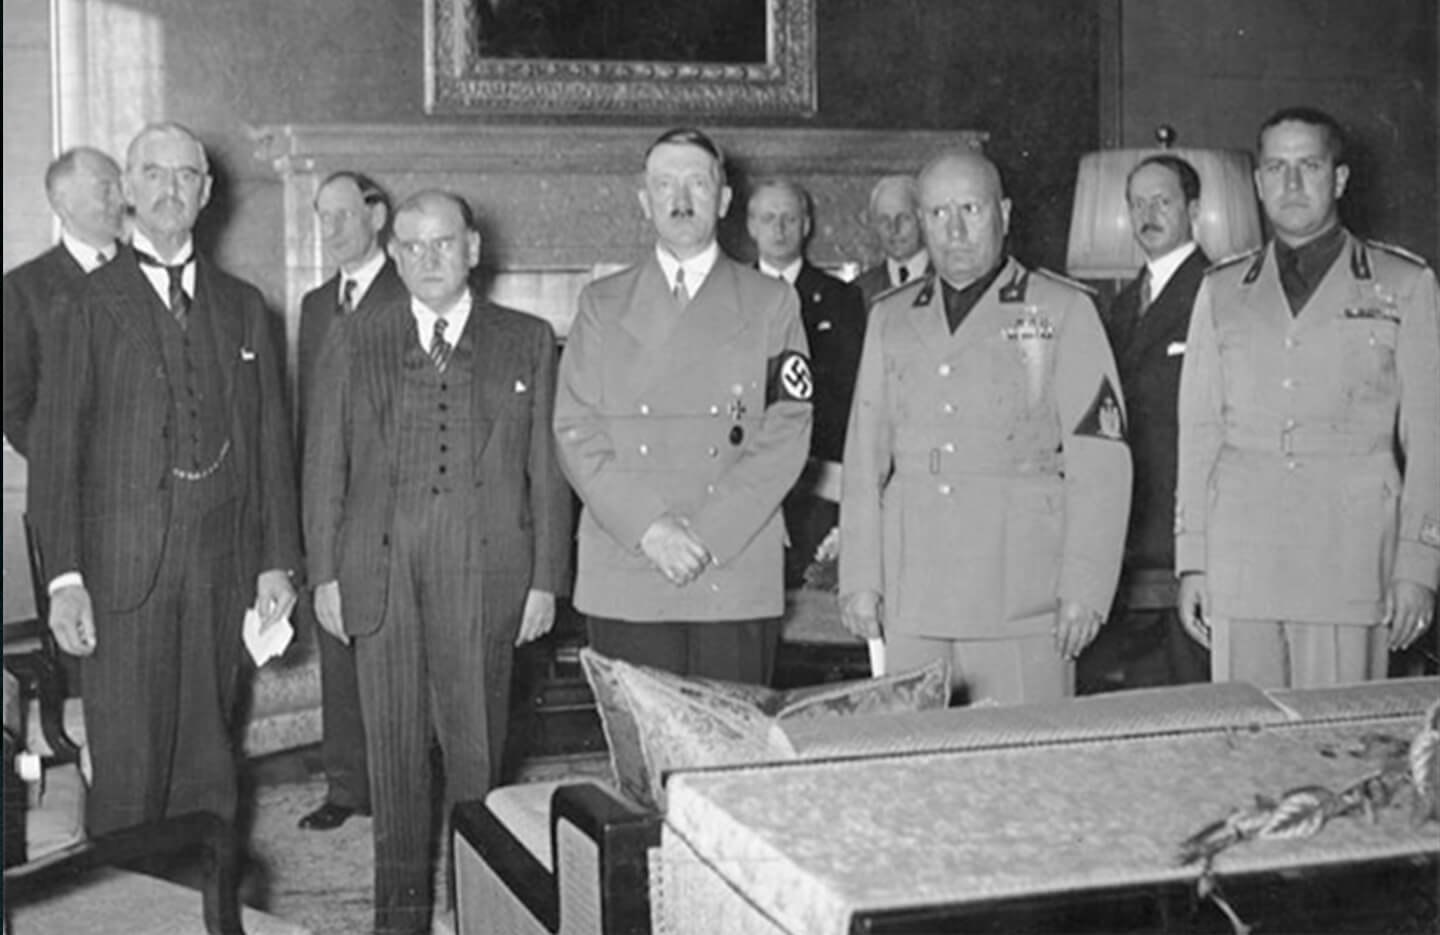 Nazi Leadership stands in a row with Neville Chamberlain after signing the Munich agreement.